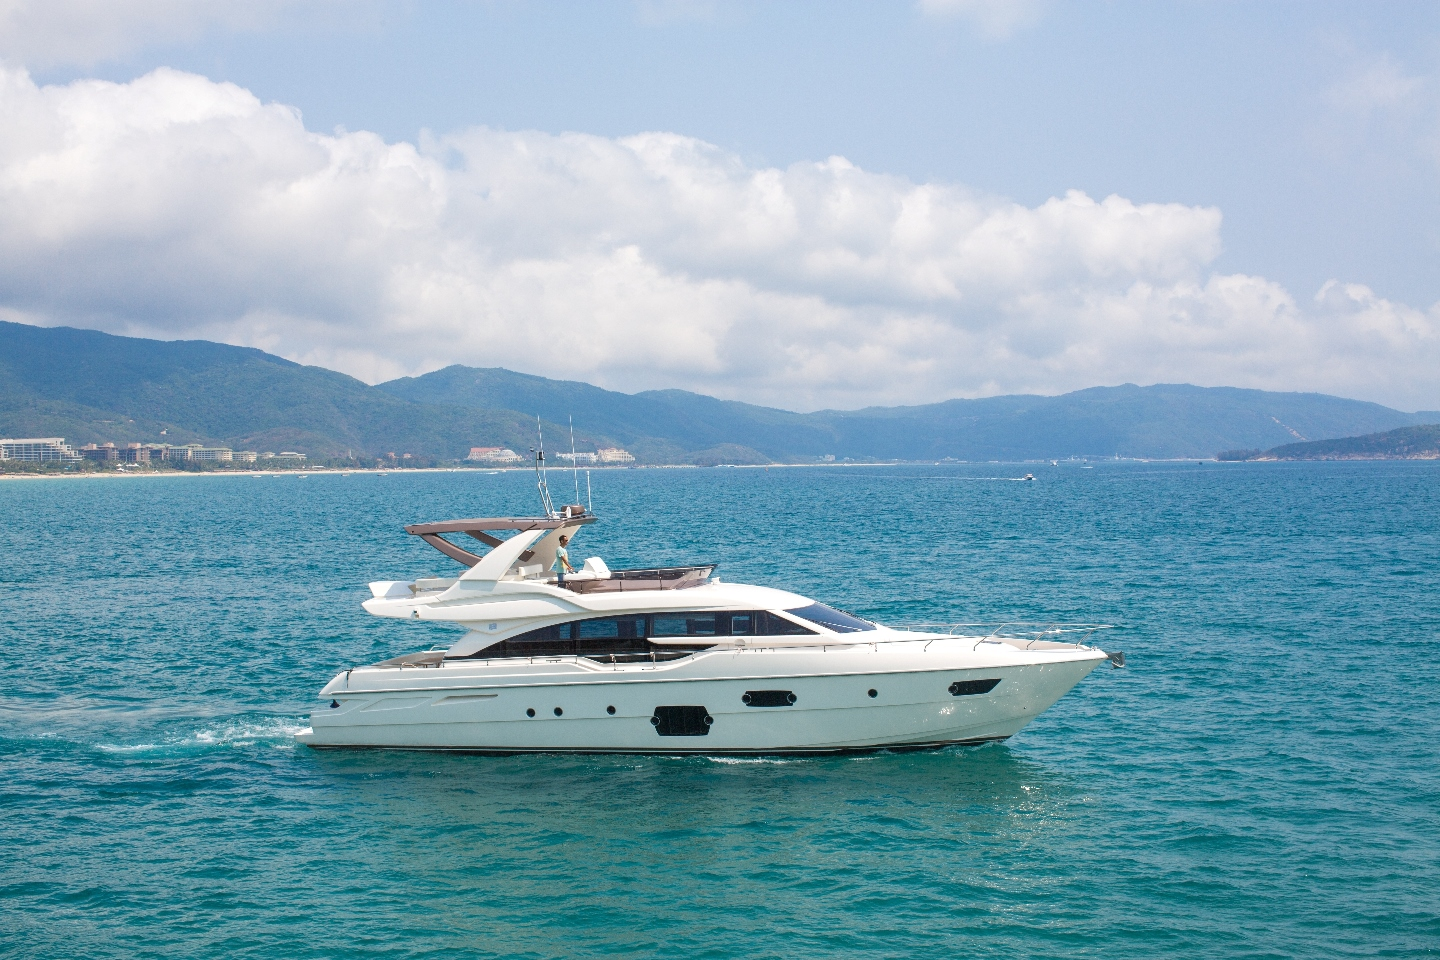 Azimut Yacht: Simpson Marine appointed as exclusive dealer for Beijing and Tianjin in renewed partnership agreement for Asia.